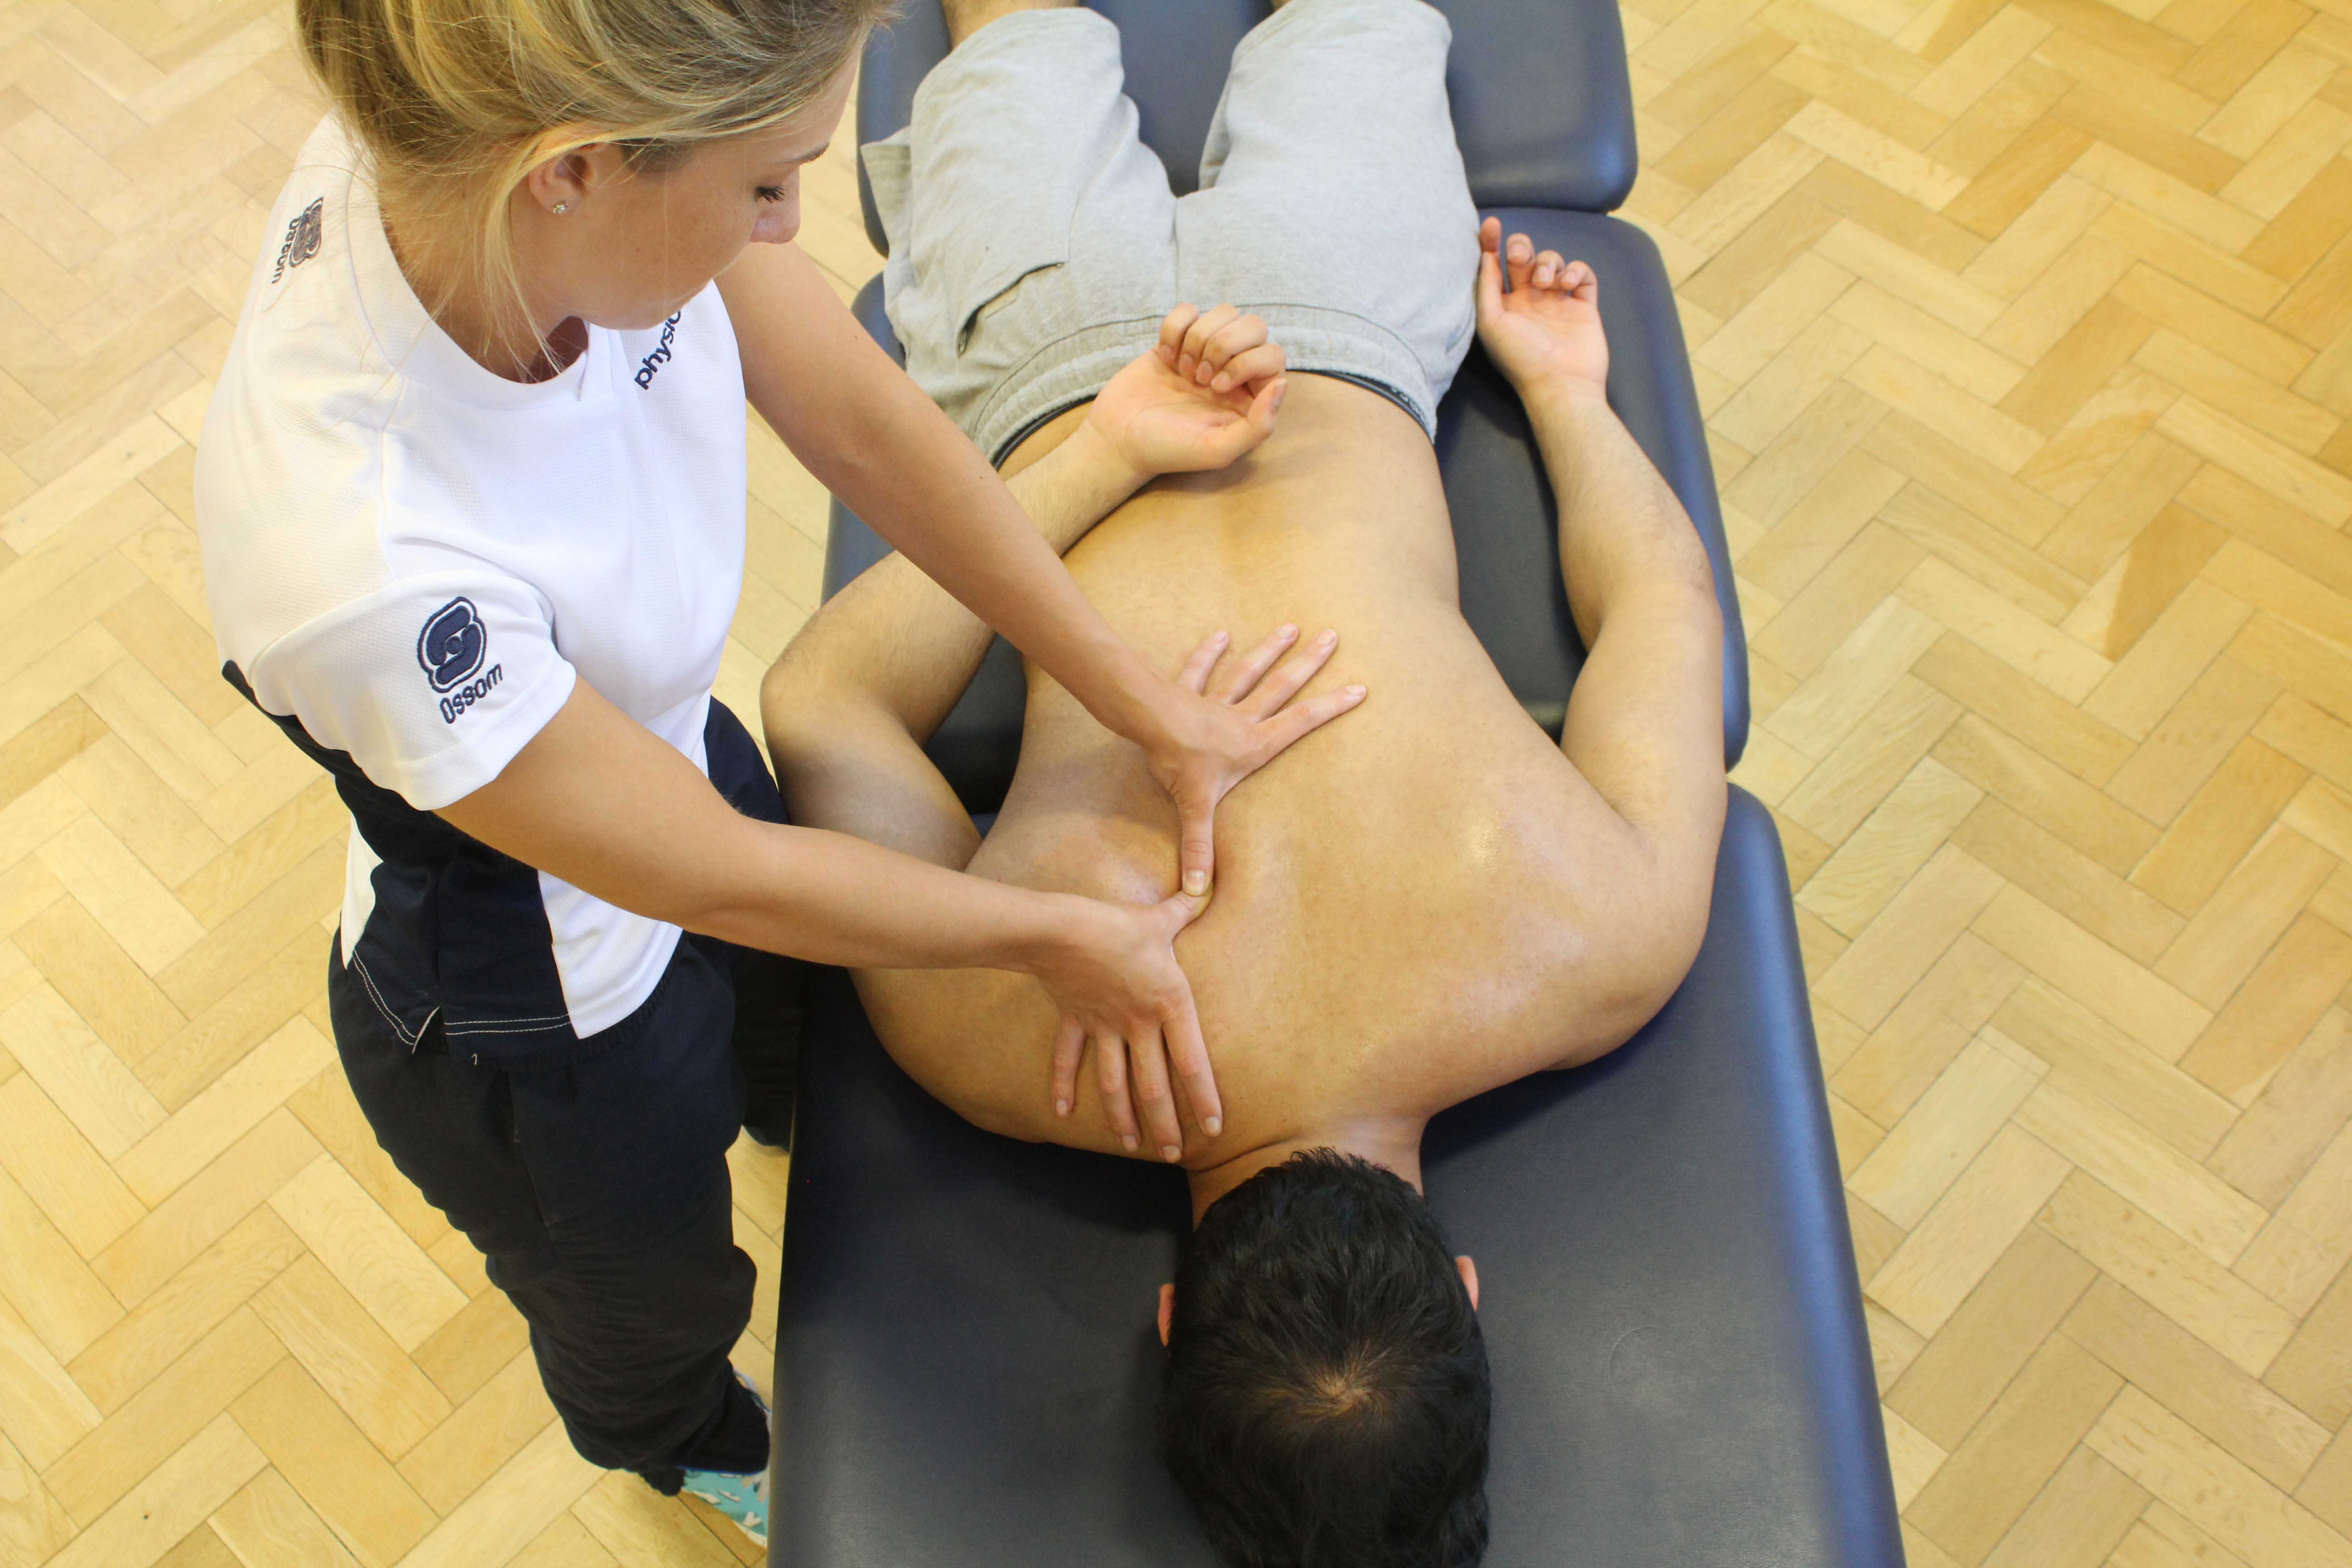 Trigger point massage of the muscles in the upper back